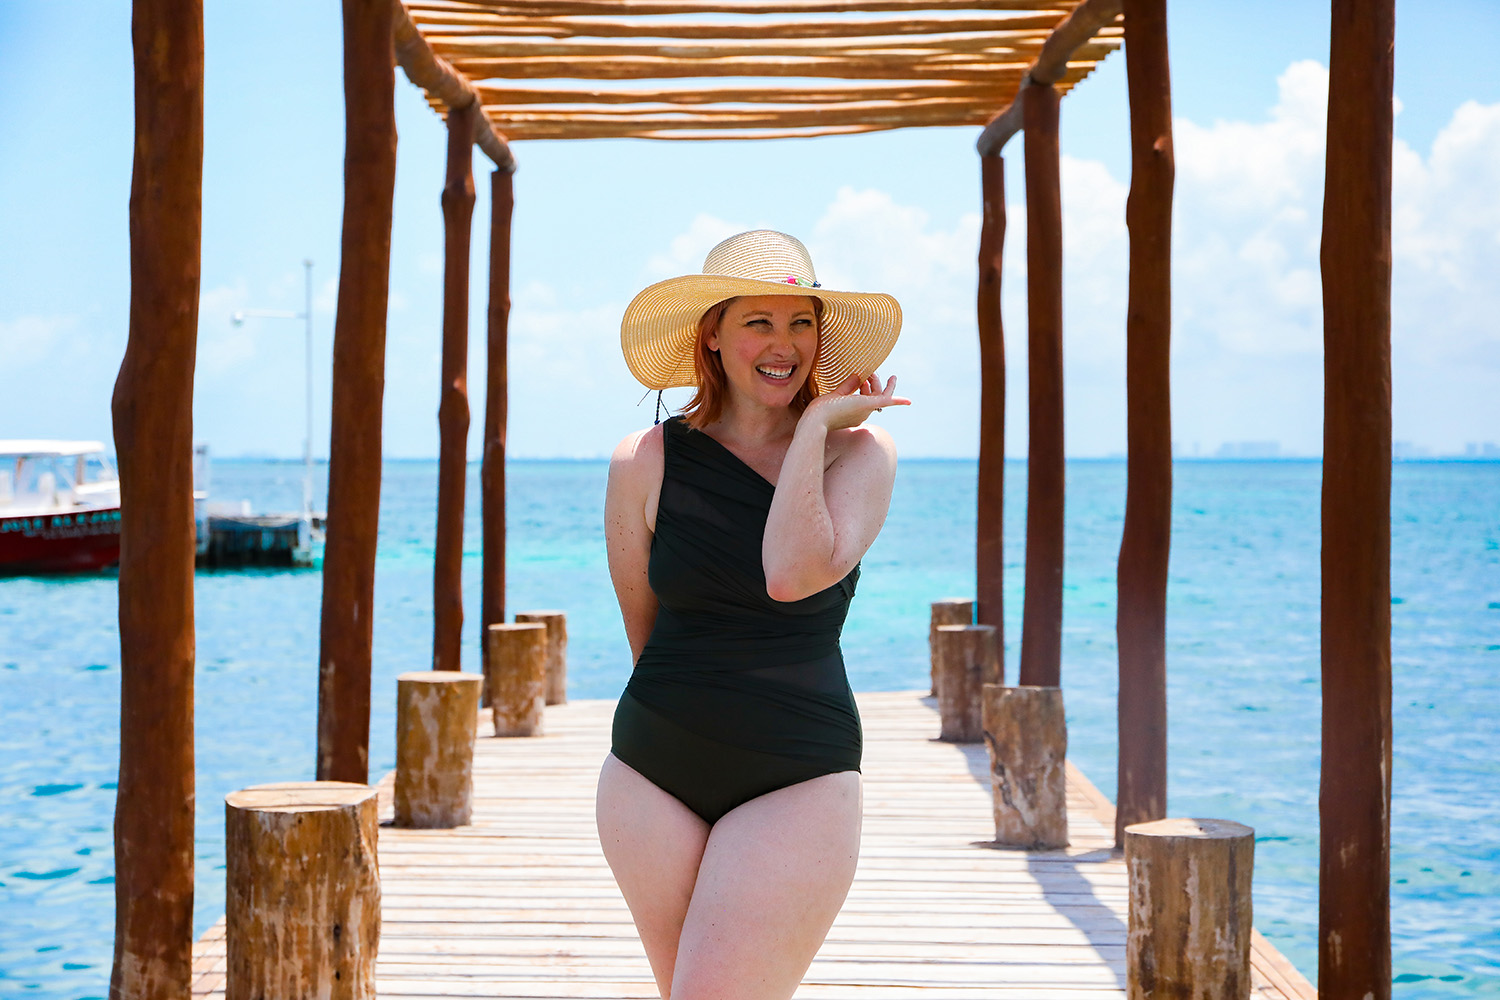 On the hunt for a one shoulder swimsuit? This one from Miraclesuit Swimwear is ADORABLE!